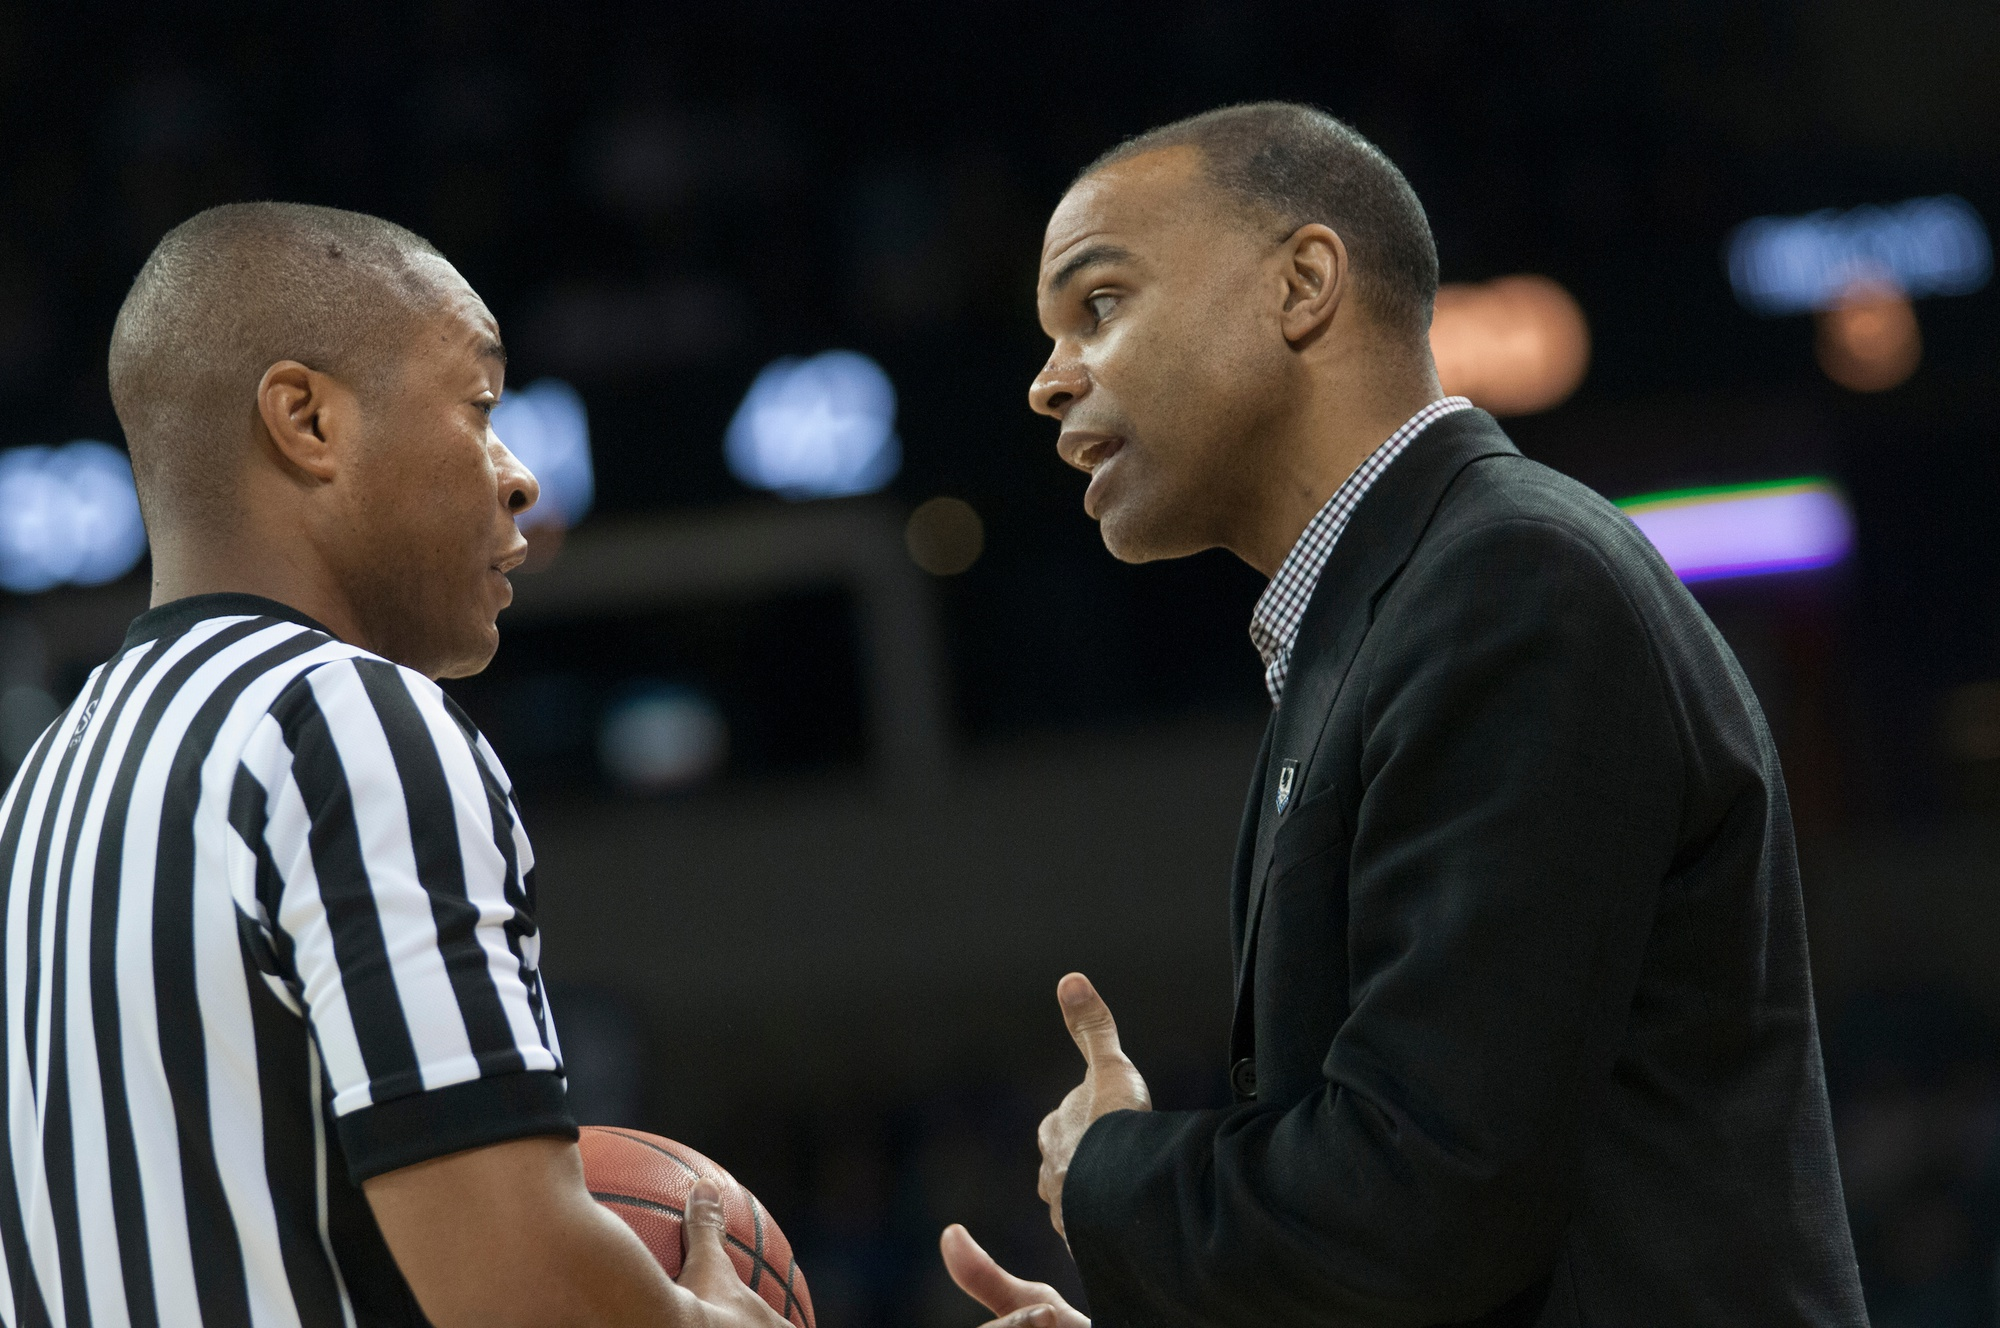 Coach Amaker talks with a ref during the Crimson's 2014 NCAA tournament game against Michigan State. The Crimson advanced to the third round that year after a win against Cincinnati. It marked Amaker's third tournament appearance in a row.